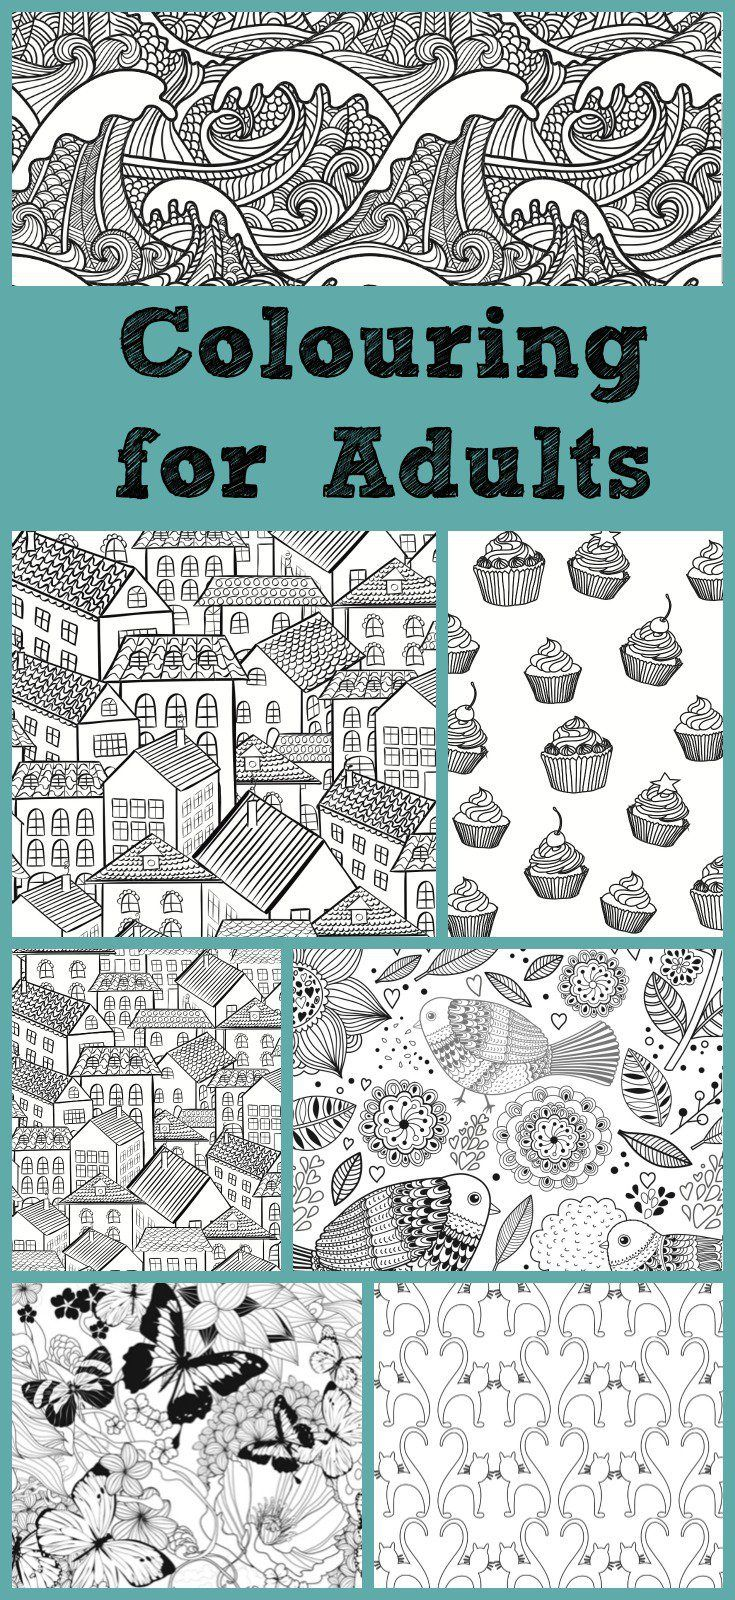 Coloring books for adults stress relief - Colouring Books For Adults